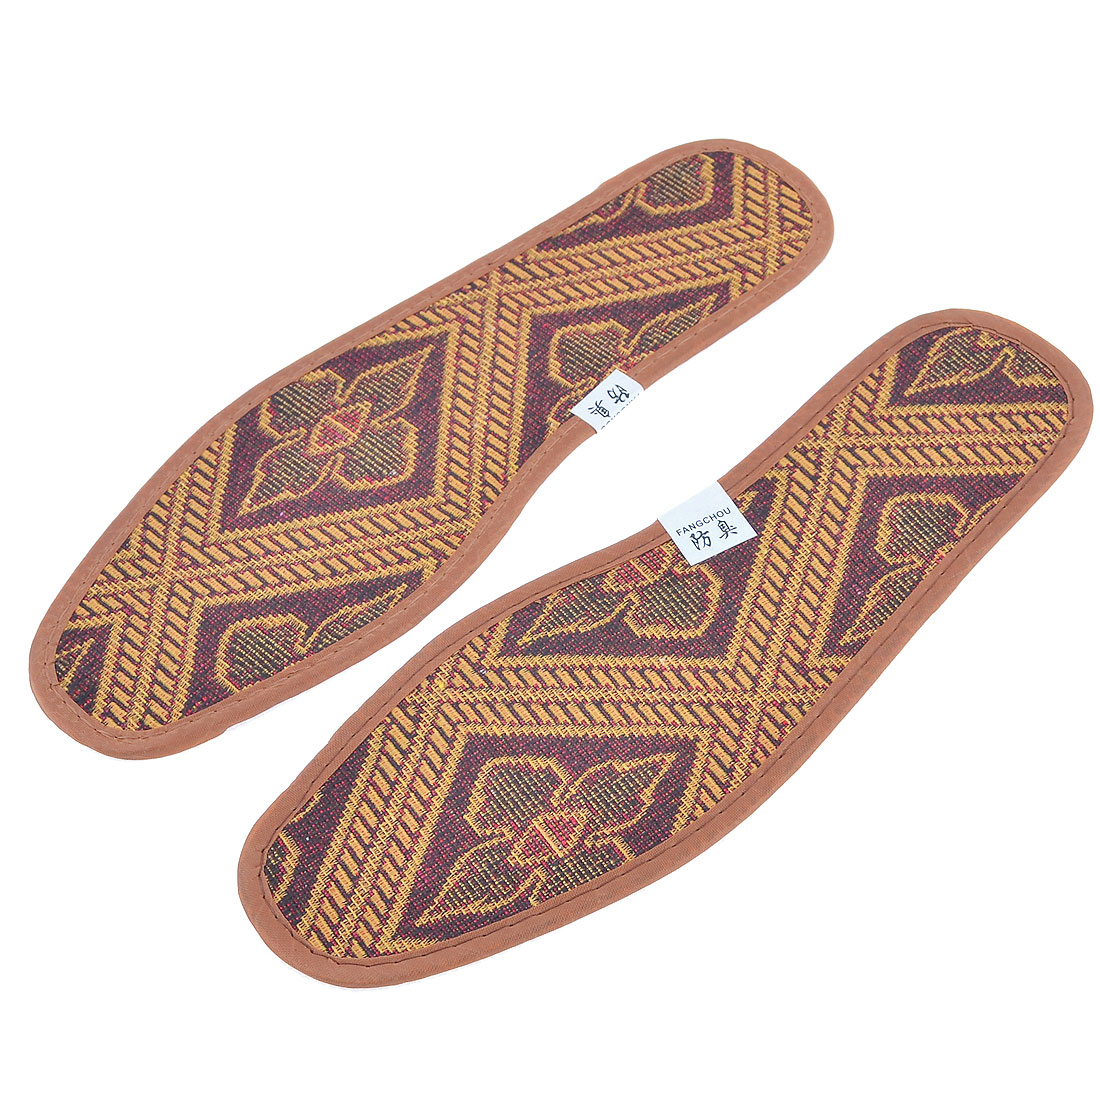 Pair Polyester Floral Pattern Insoles Shoe Pads Yellow Brown US Size 7 for Man